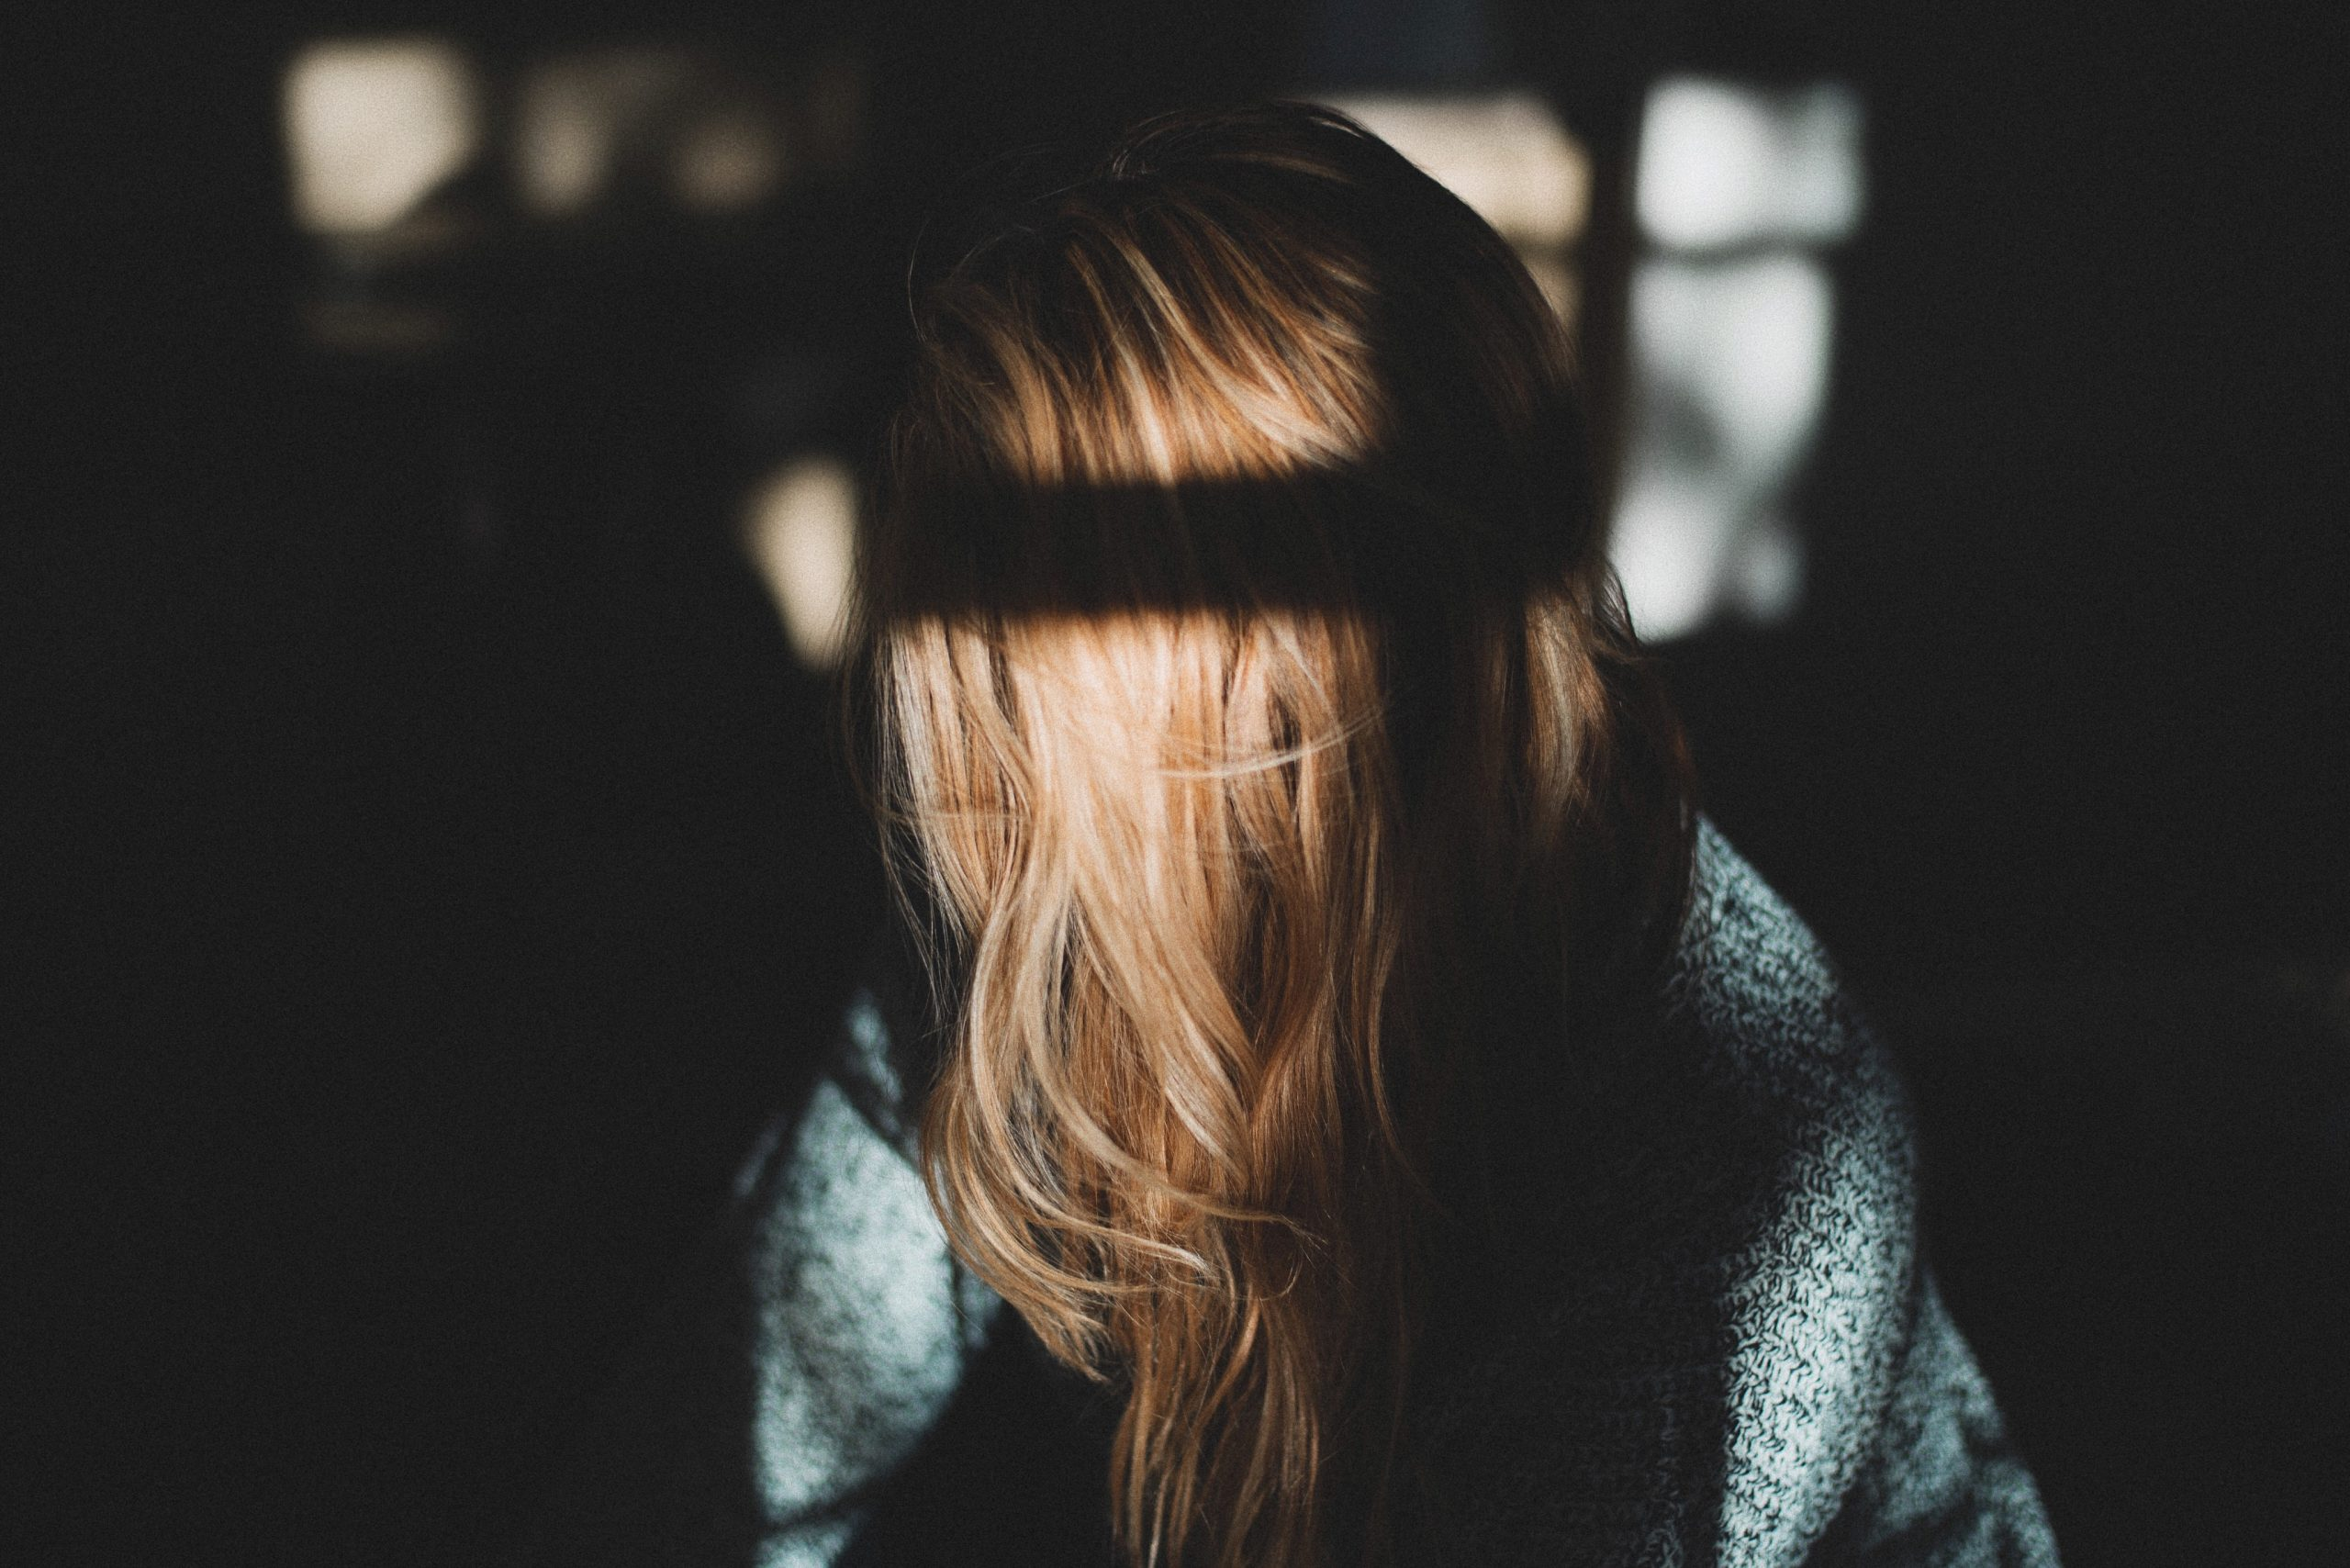 Girl with long hair covering her face